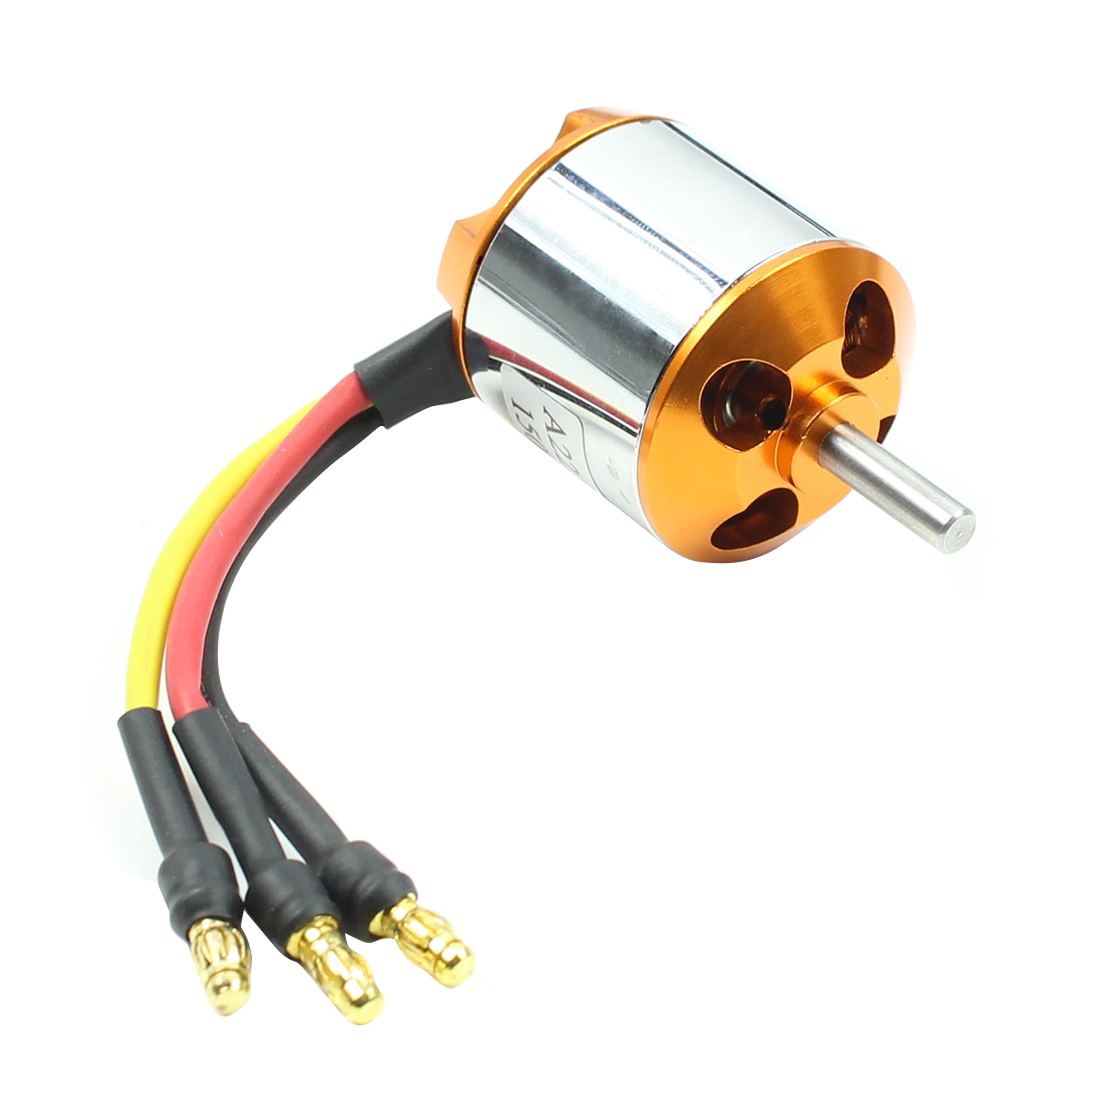 1x A2217 950KV <font><b>1250KV</b></font> 1500KV 2300KV Outrunner Brushless Motor 3-4S w Mount for RC Helicopter Drone Quadcopter 6~11 inch Props image